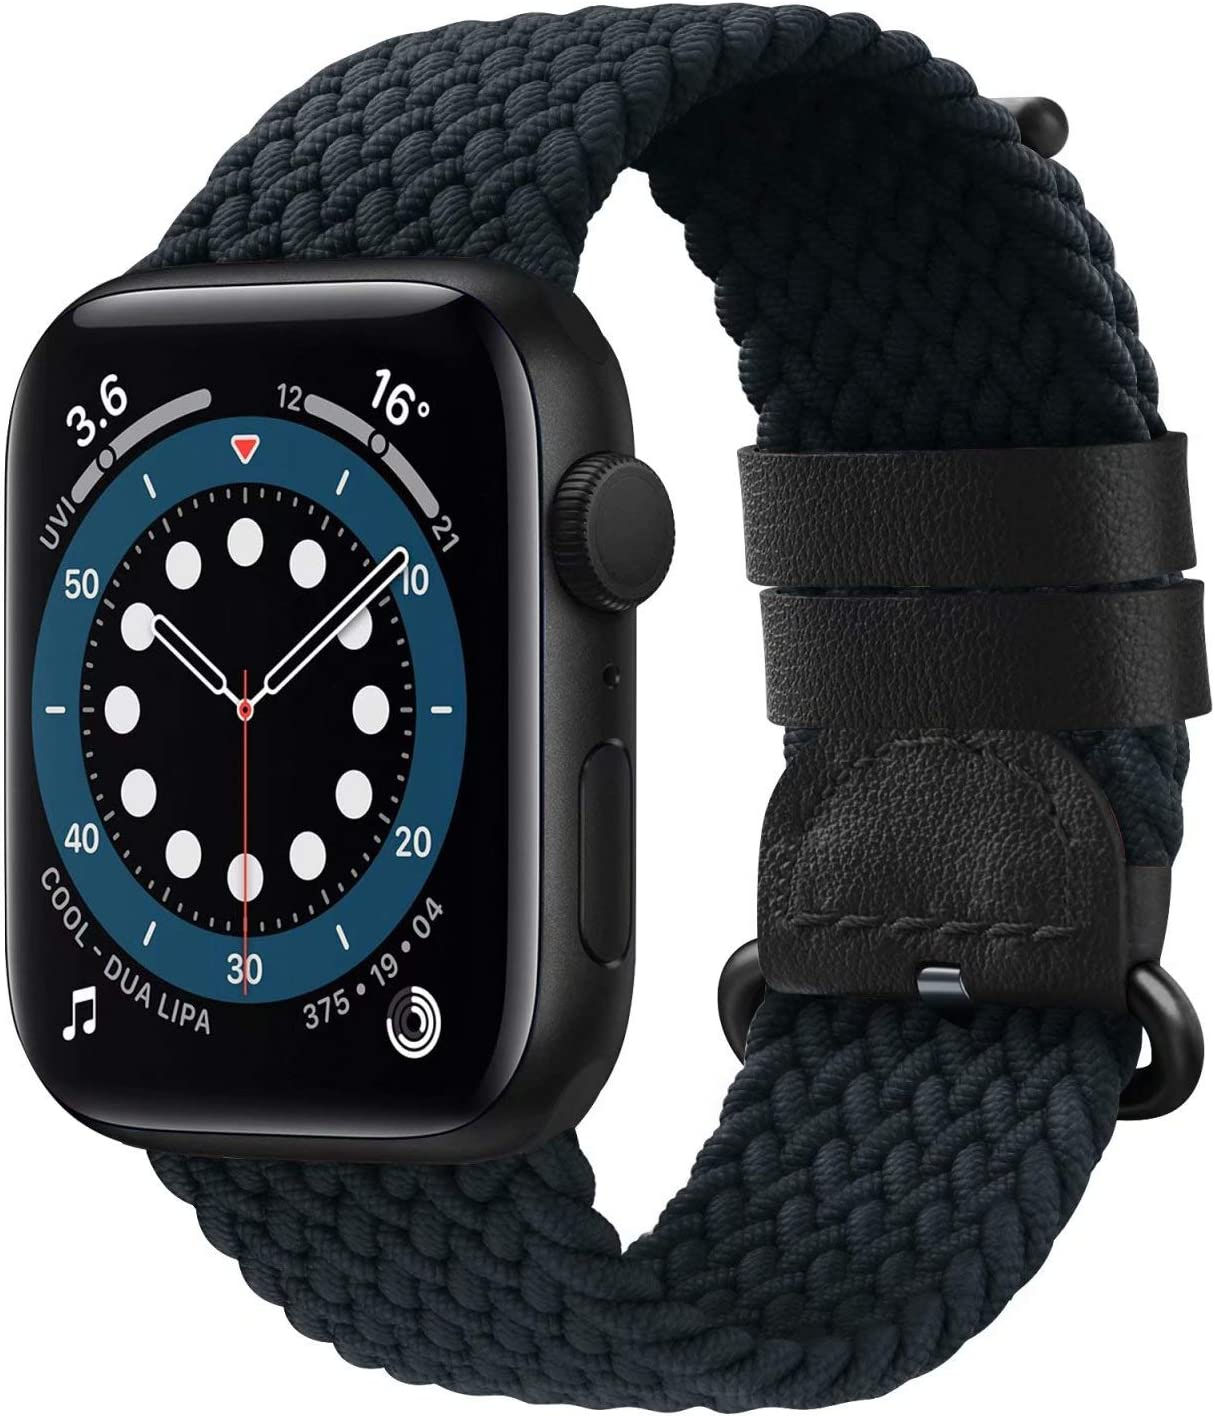 UHKZ Braided Nylon Solo Loop Compatible with Apple Watch Bands 38mm 40mm 42mm 44mm, Adjustable Elastic Sport Strap Women Men with Buckle Replacement Wristband for iWatch Series SE/6/5/4/3/2/1